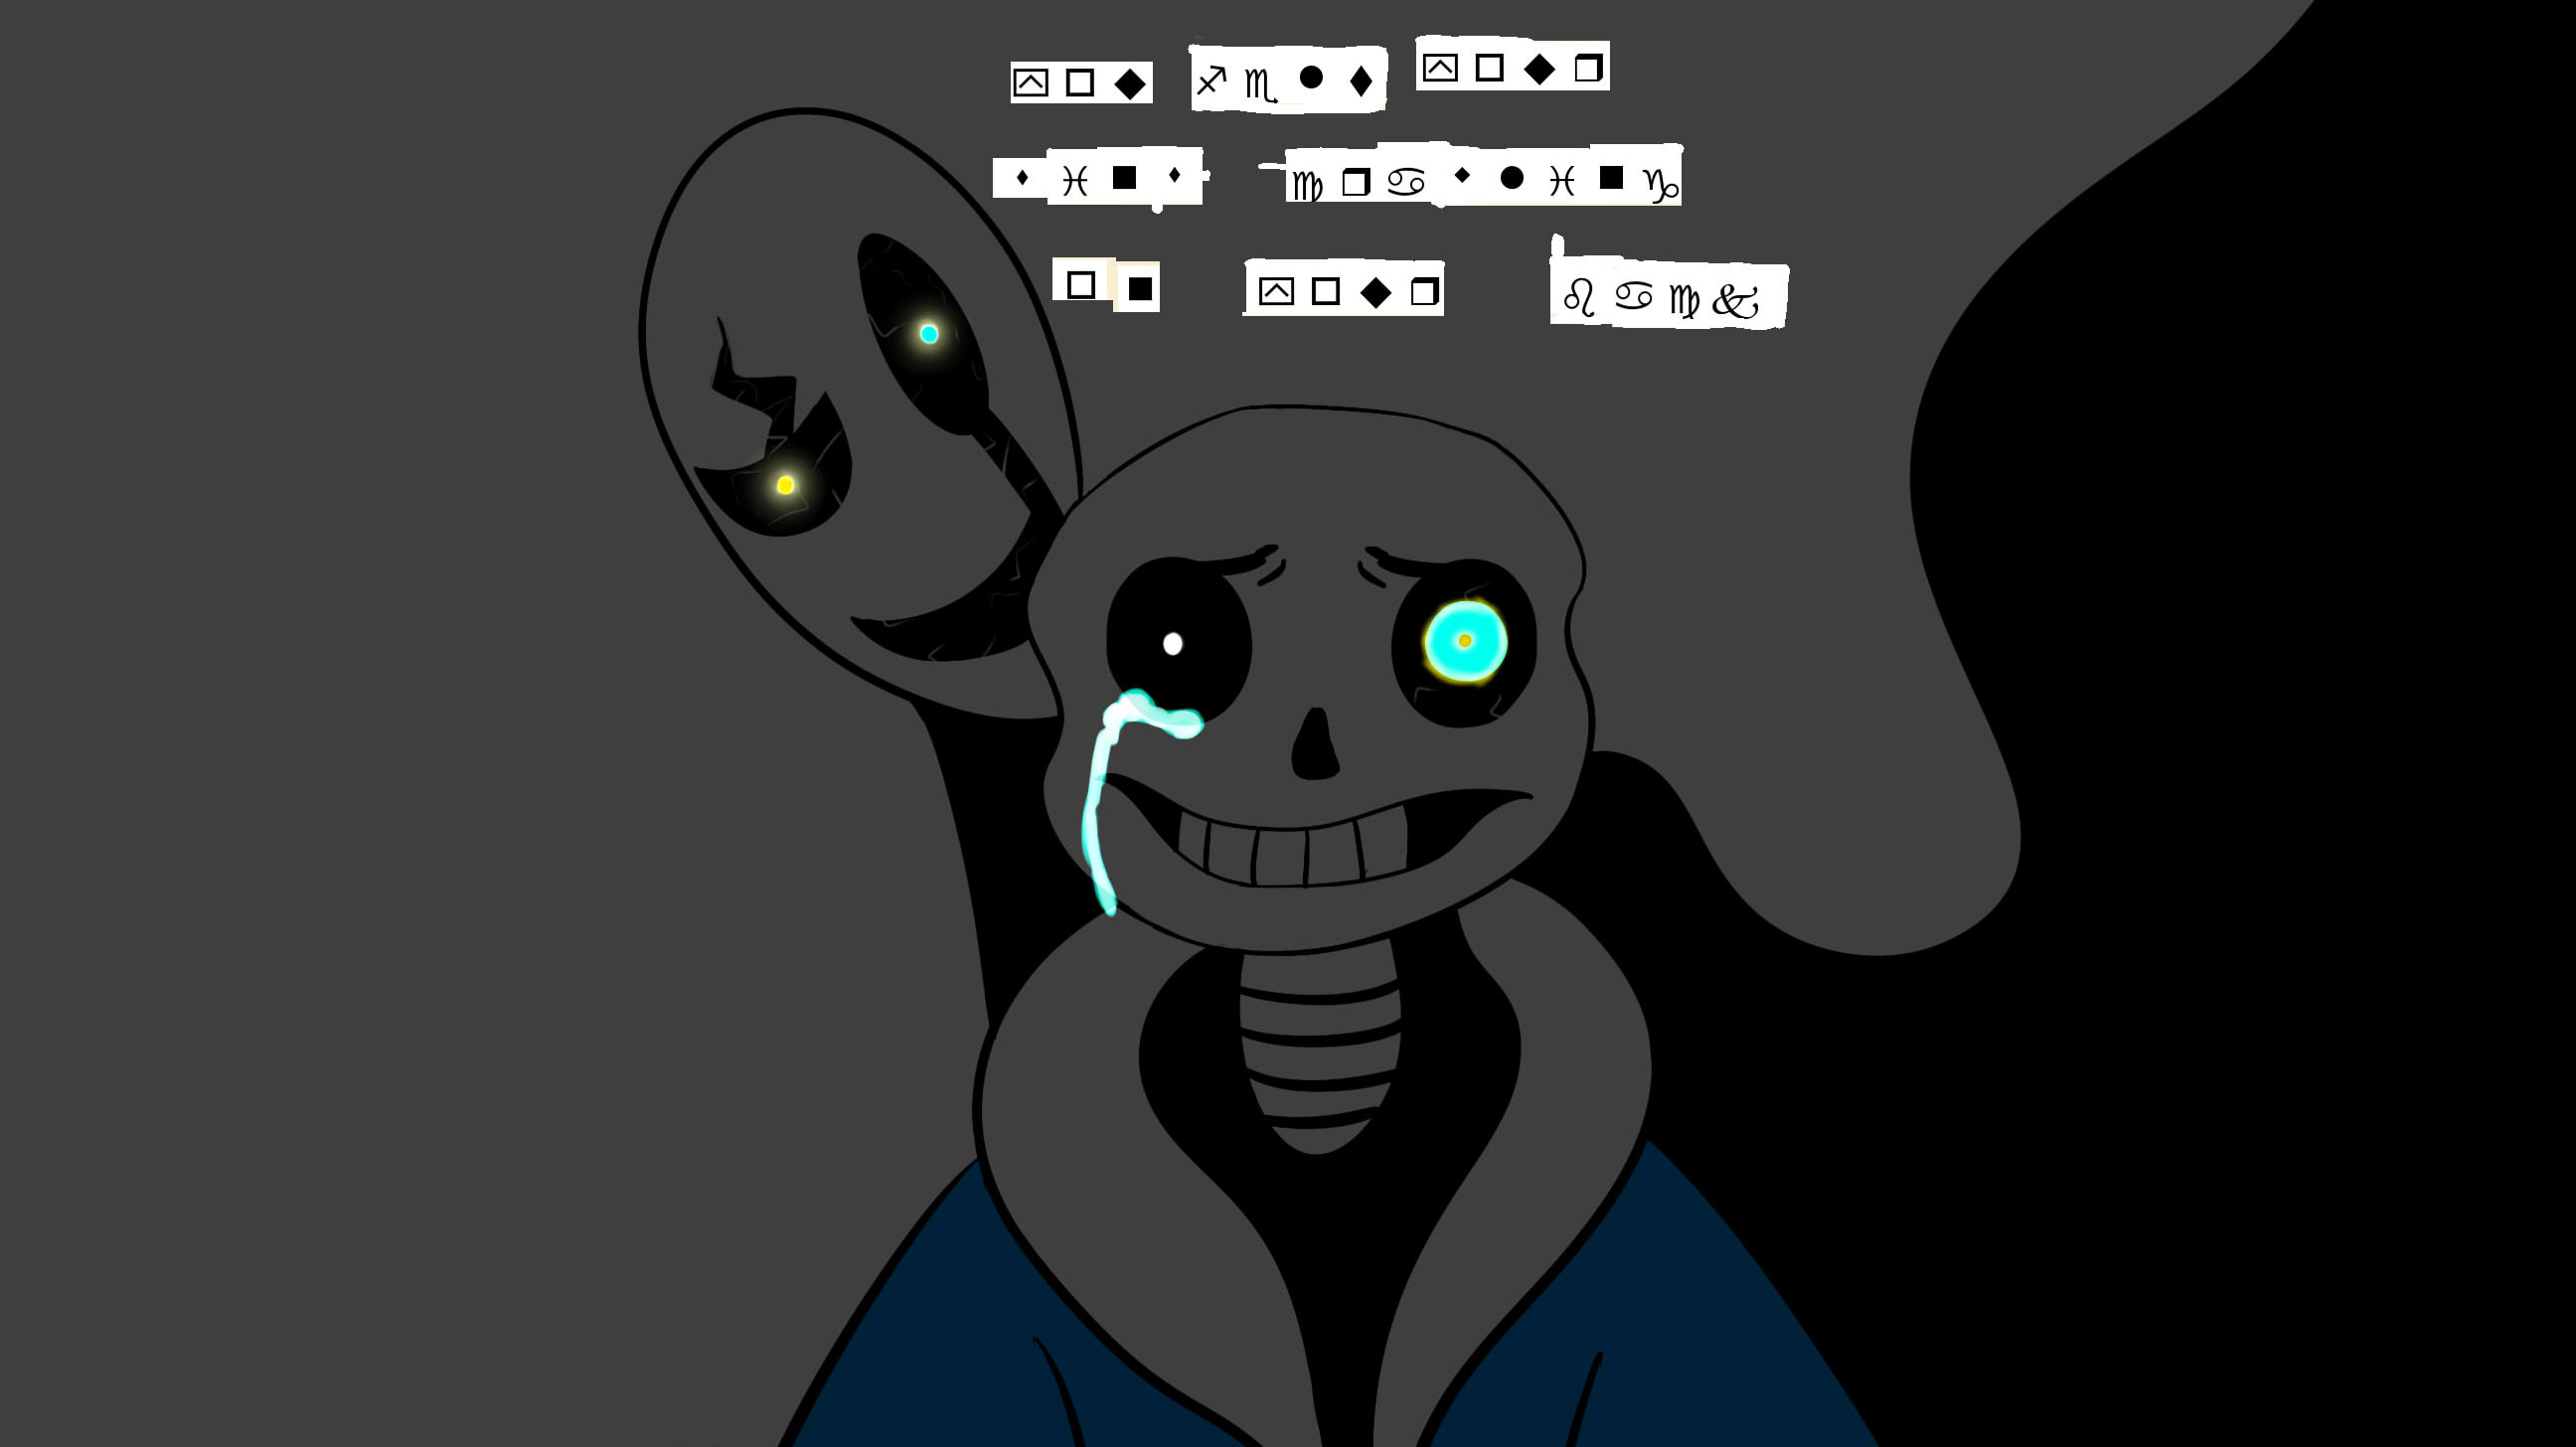 2592x1456 Undertale: Gaster Blaster by Rides111 on DeviantArt